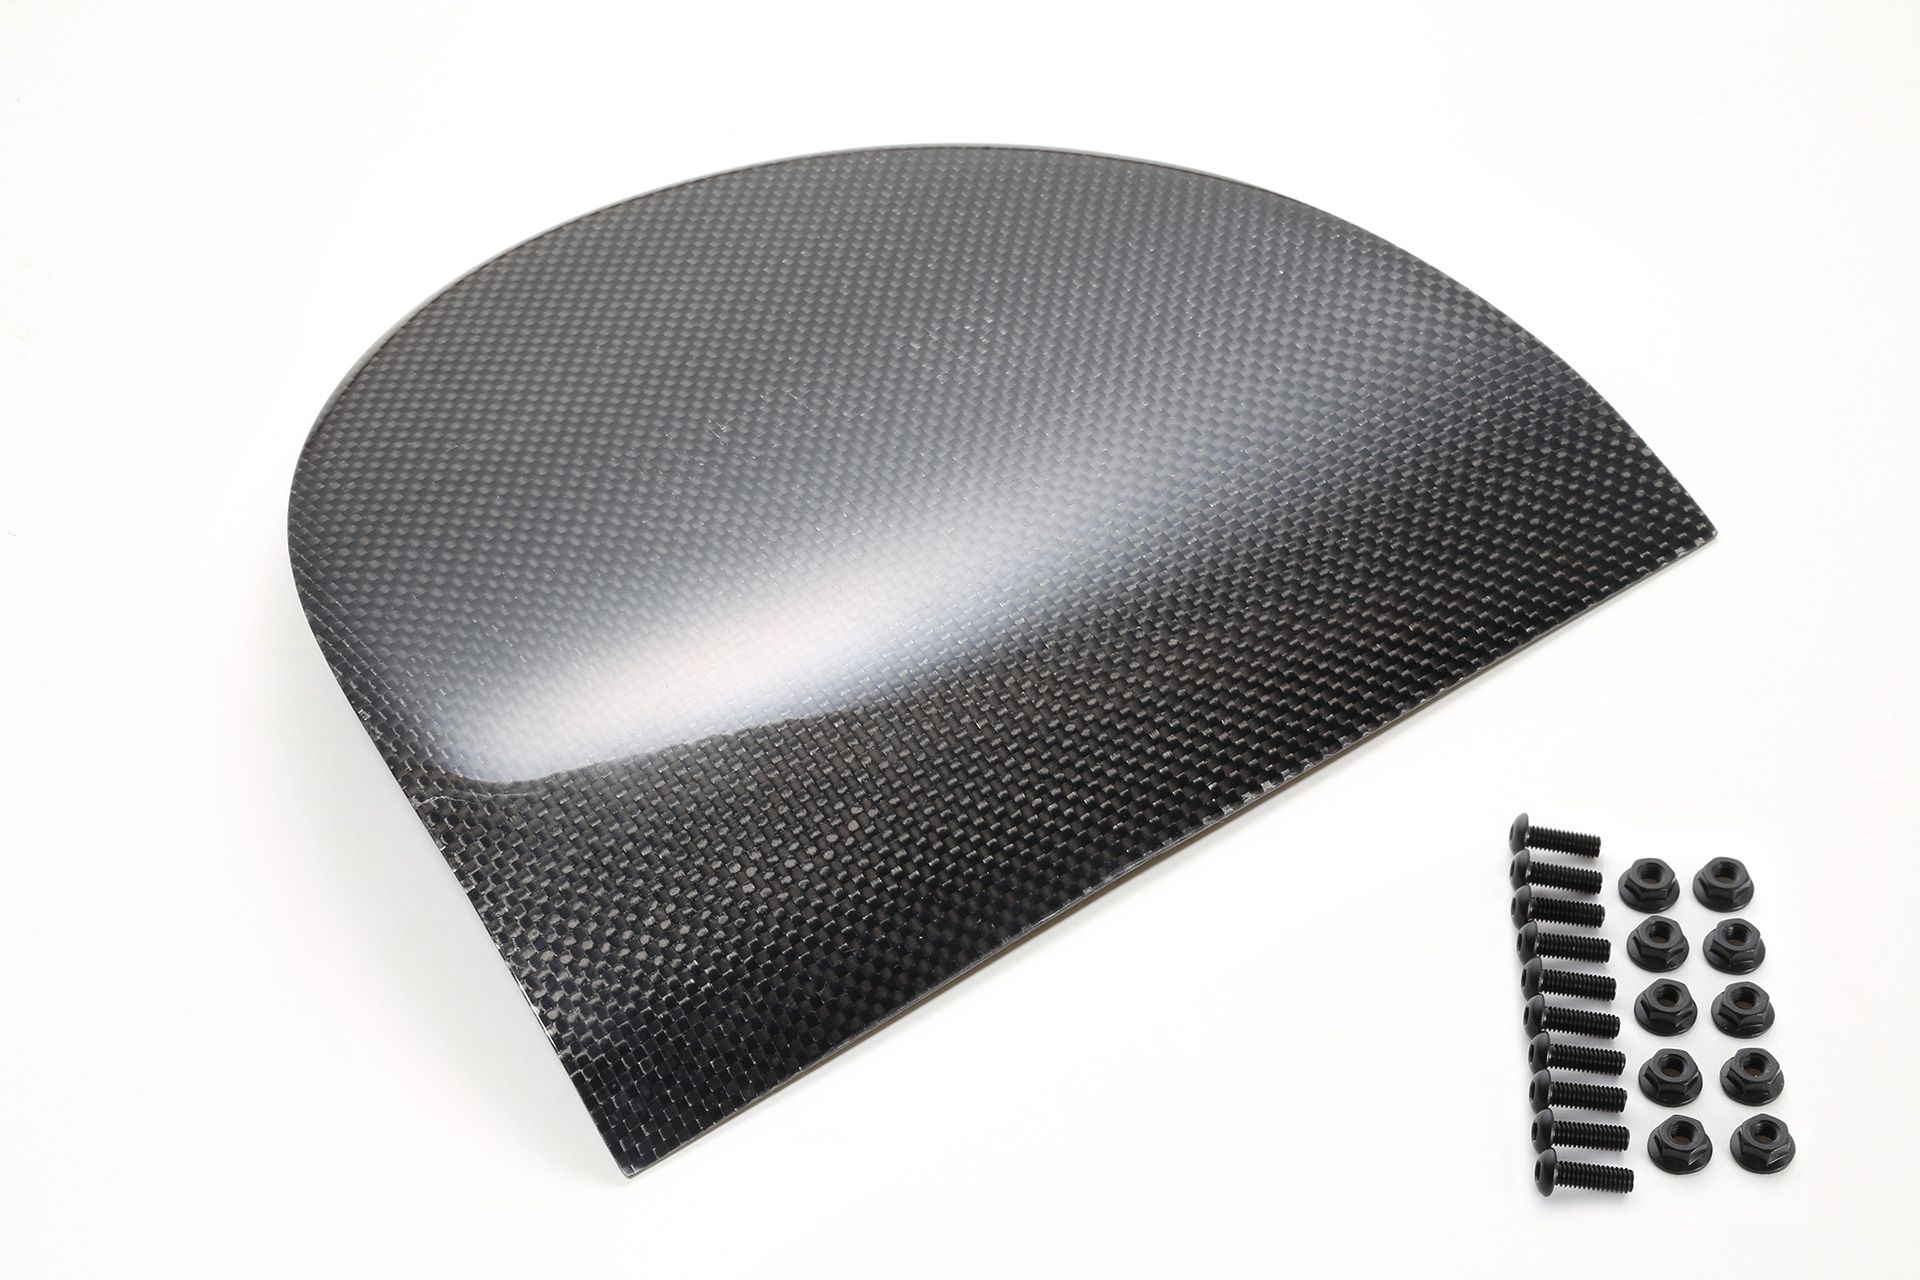 Tomei Early Model Carbon Fiber Rear Bumper Cover, RH - Scion FR-S 13+, Subaru BRZ 13+, Toyota 86 17+ ZN6 / ZC6